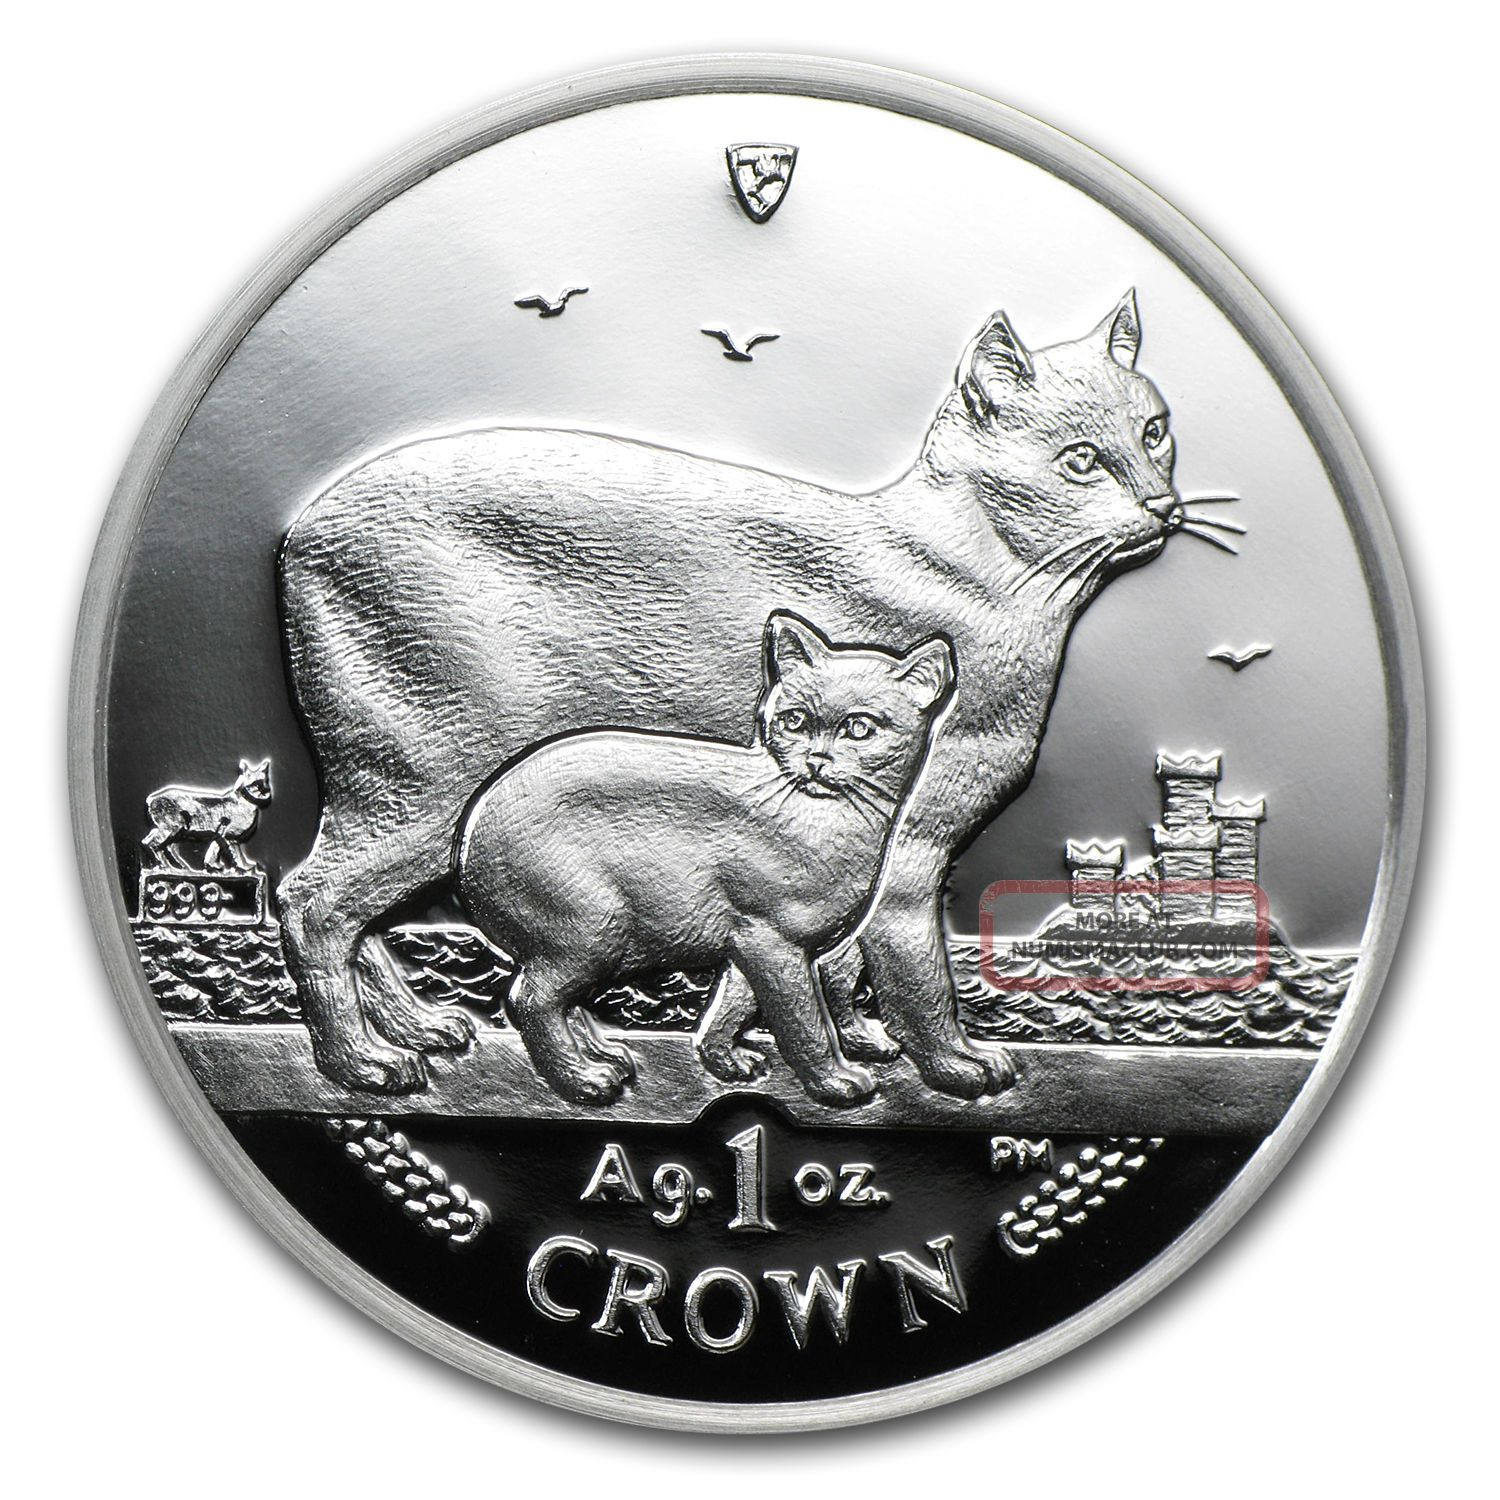 2012 Isle Of Man 1 Crown Proof Silver Manx Cat Coin - Sku 68227 Coins: World photo